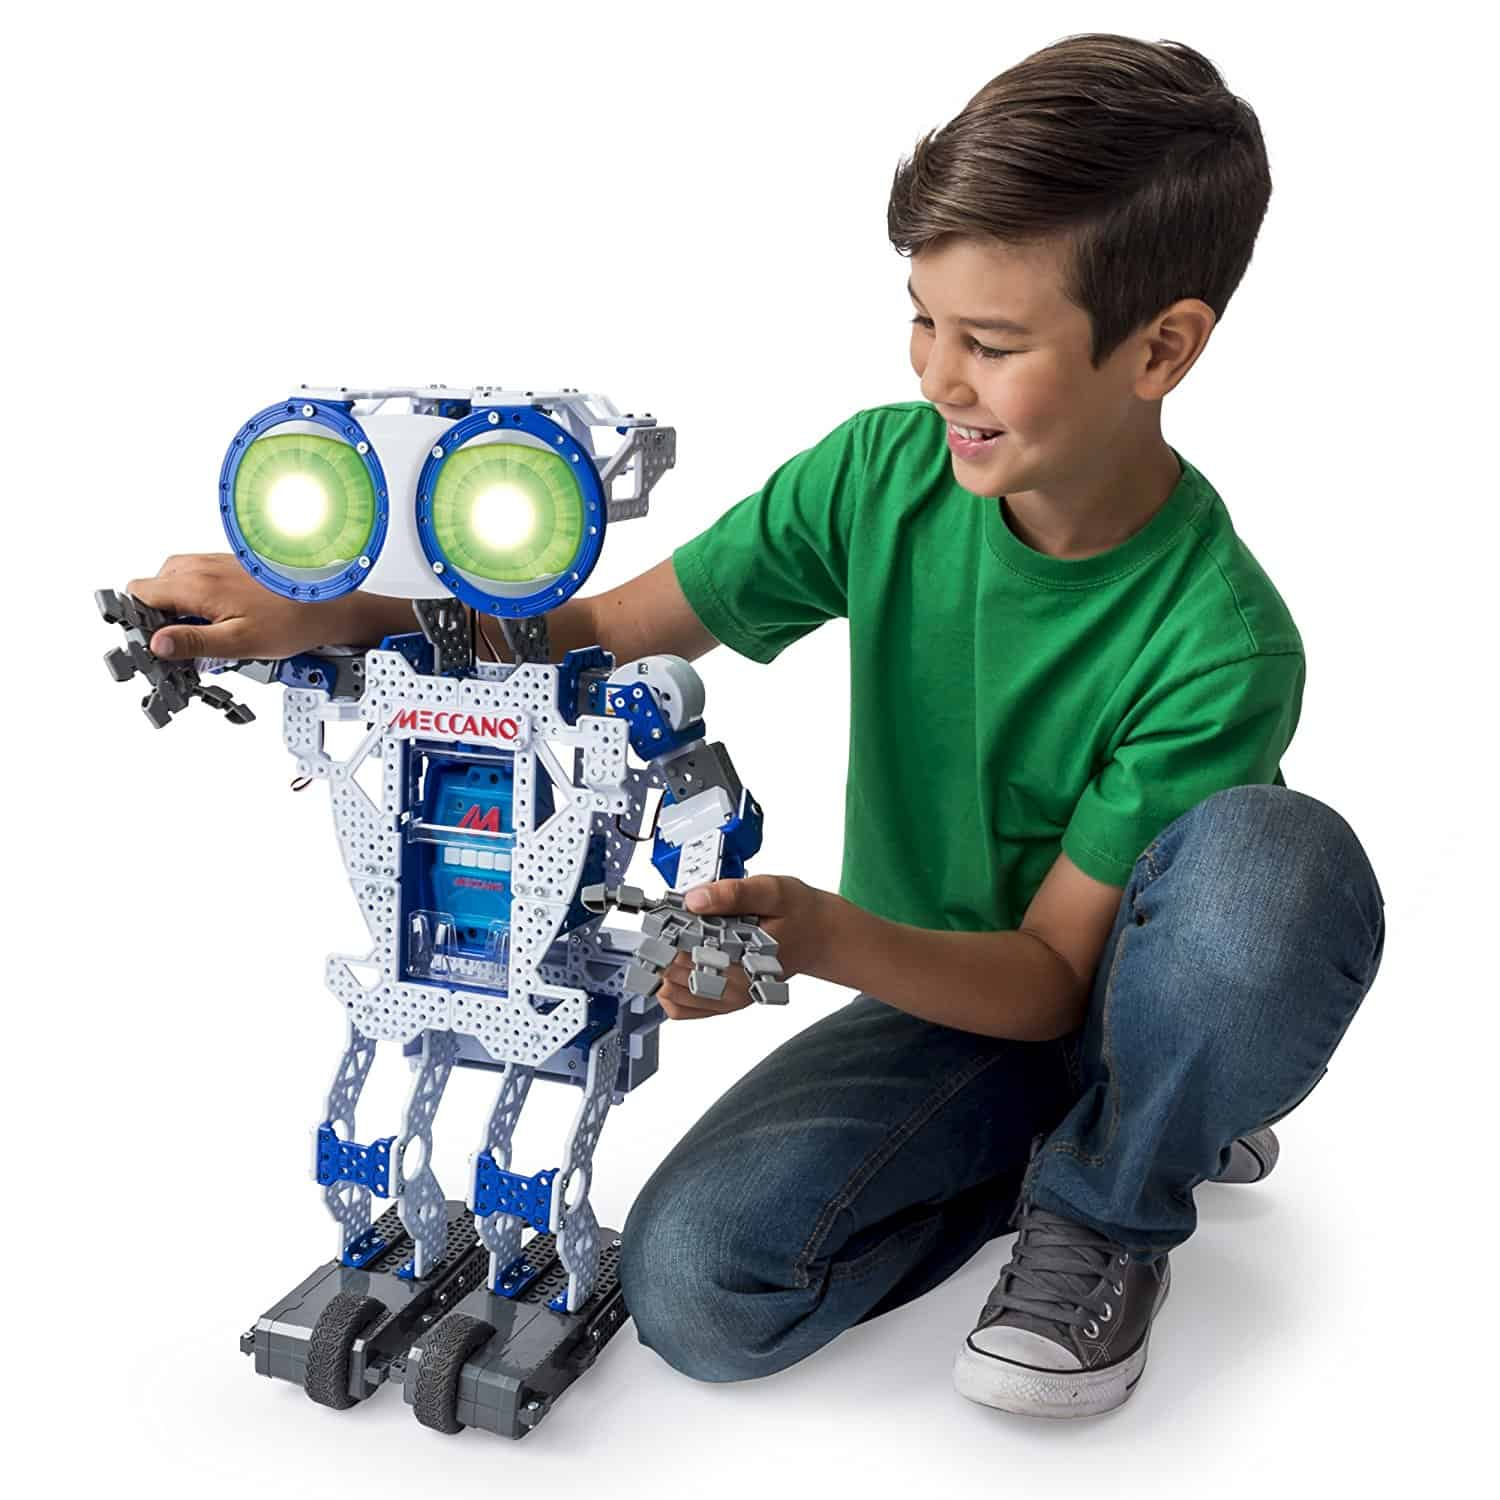 Cool Toys For Boys 2017 : Top best stem toys for boys coding engineering